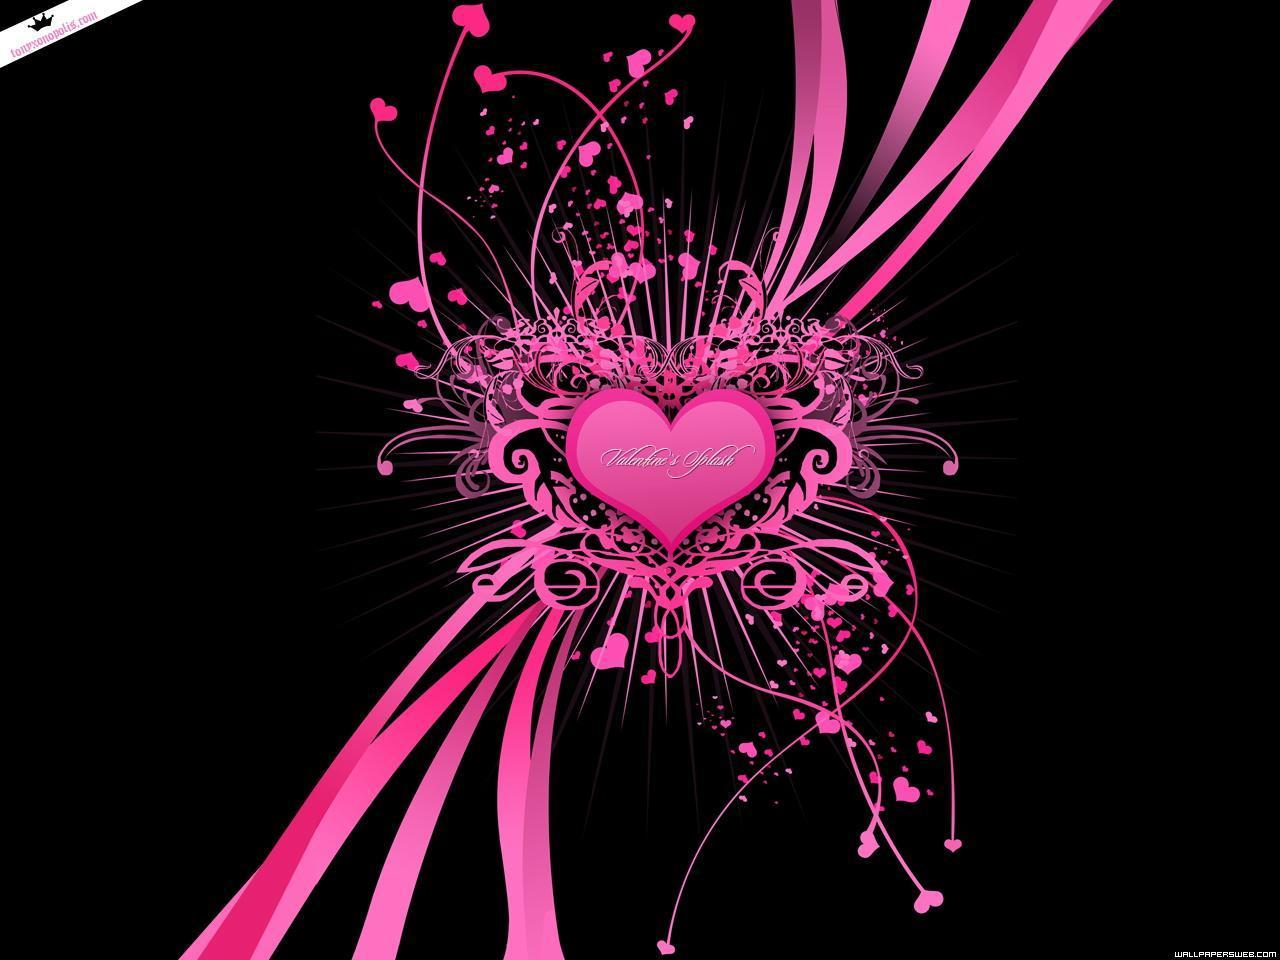 http://2.bp.blogspot.com/-beLUYDtNosA/T694knErB-I/AAAAAAAAGLQ/1C8WESgm1ms/s1600/Love-Wallpaper-love-1096191_1280_960.jpg